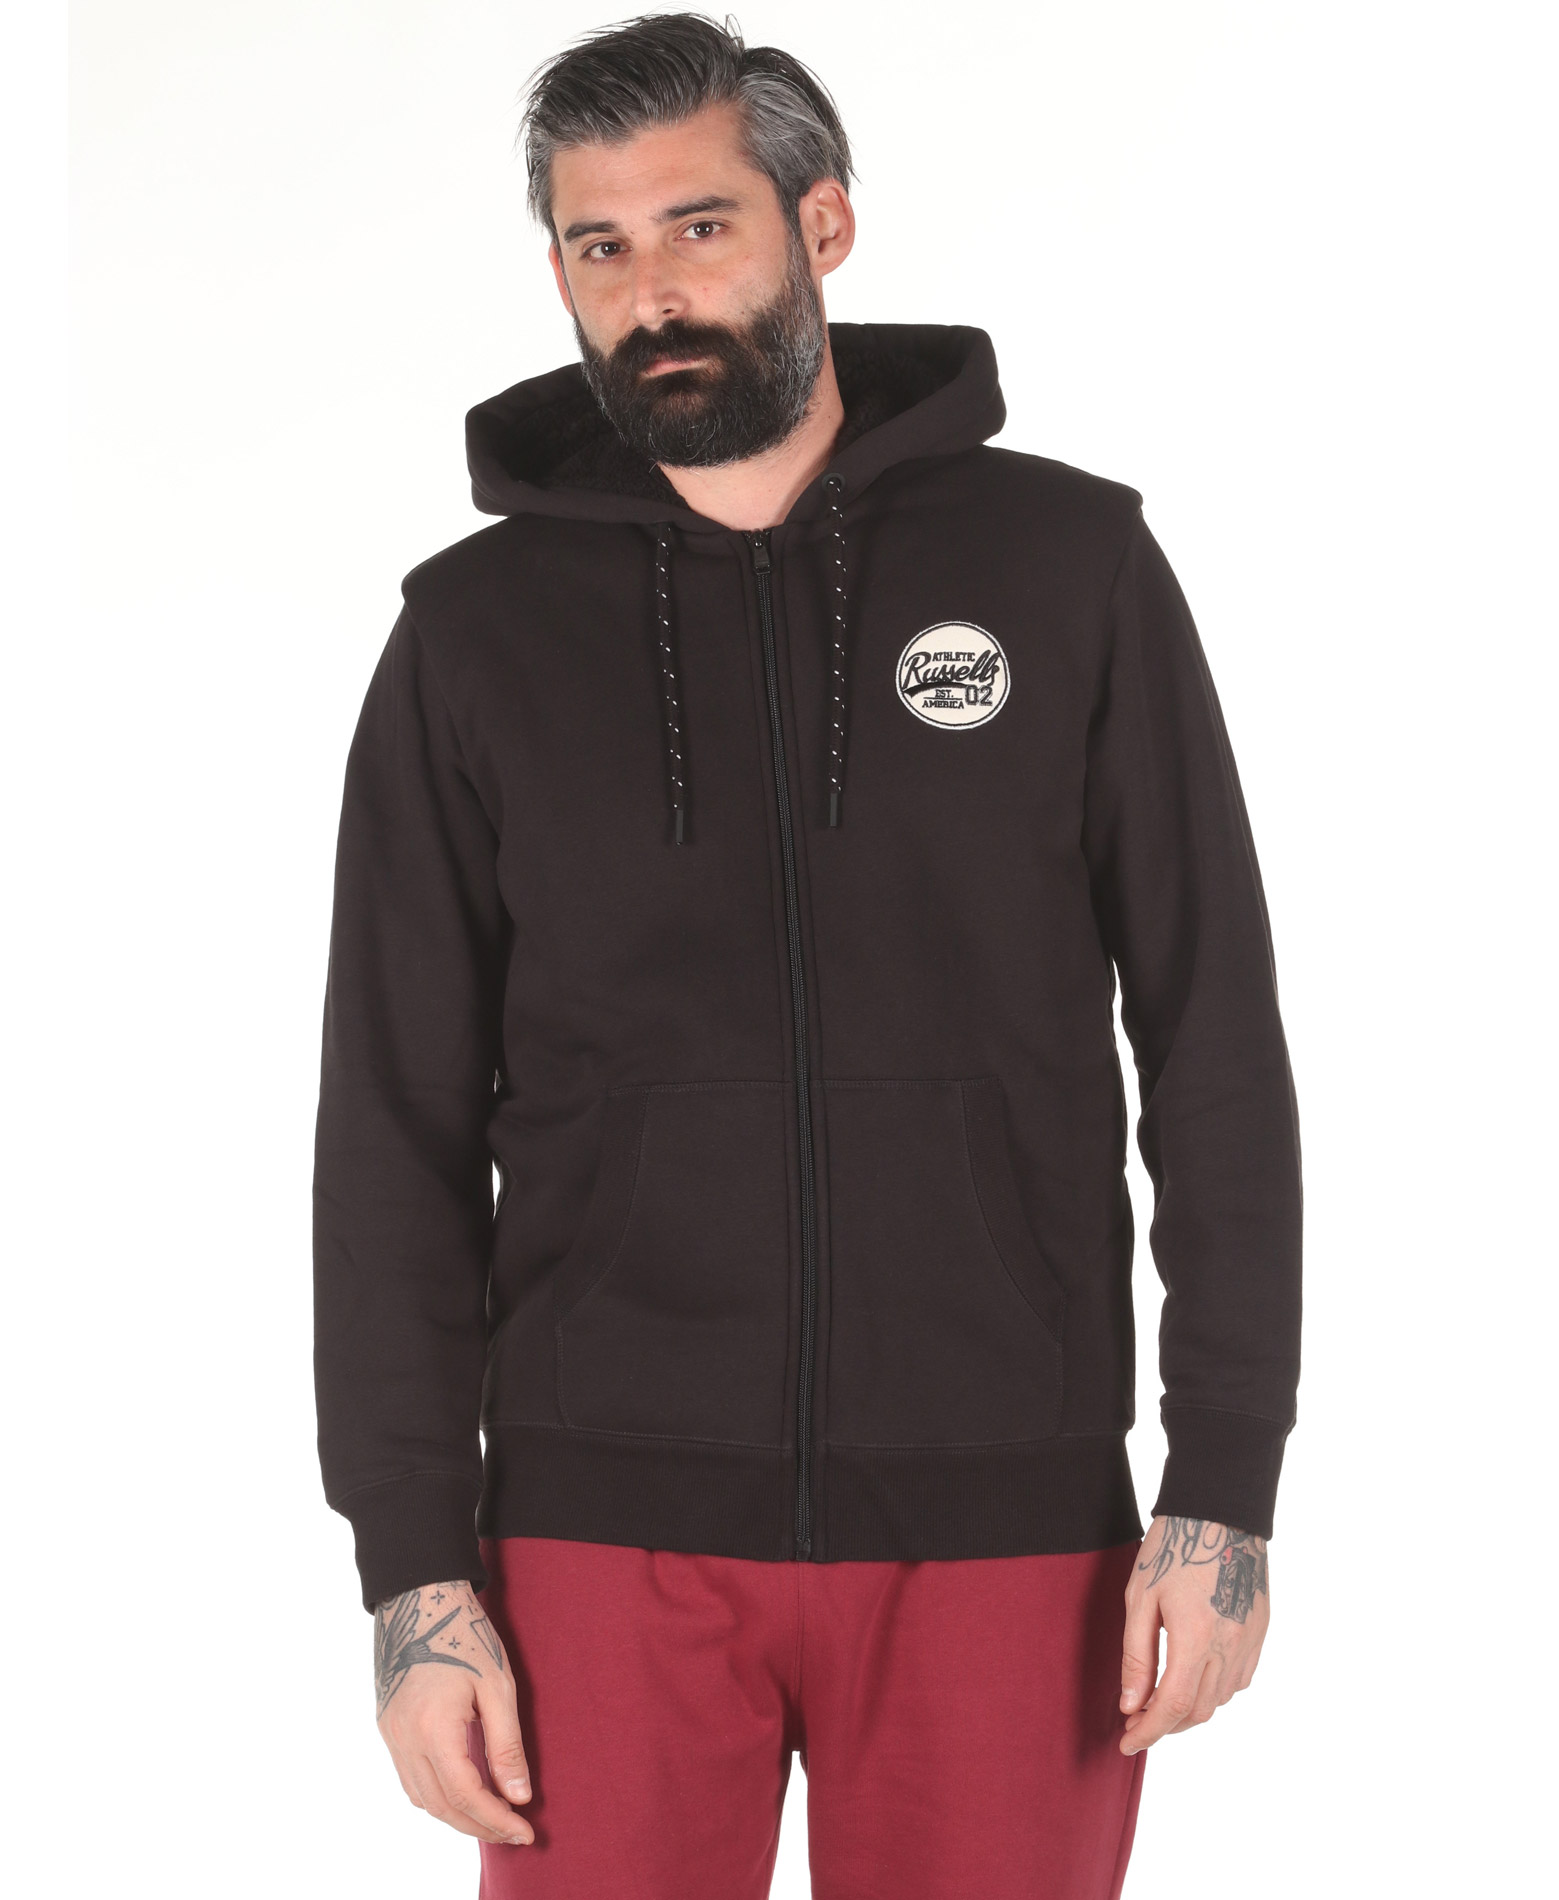 Russell Athletic ZIP THROUGH HOODY A0-041-2-099 Μαύρο